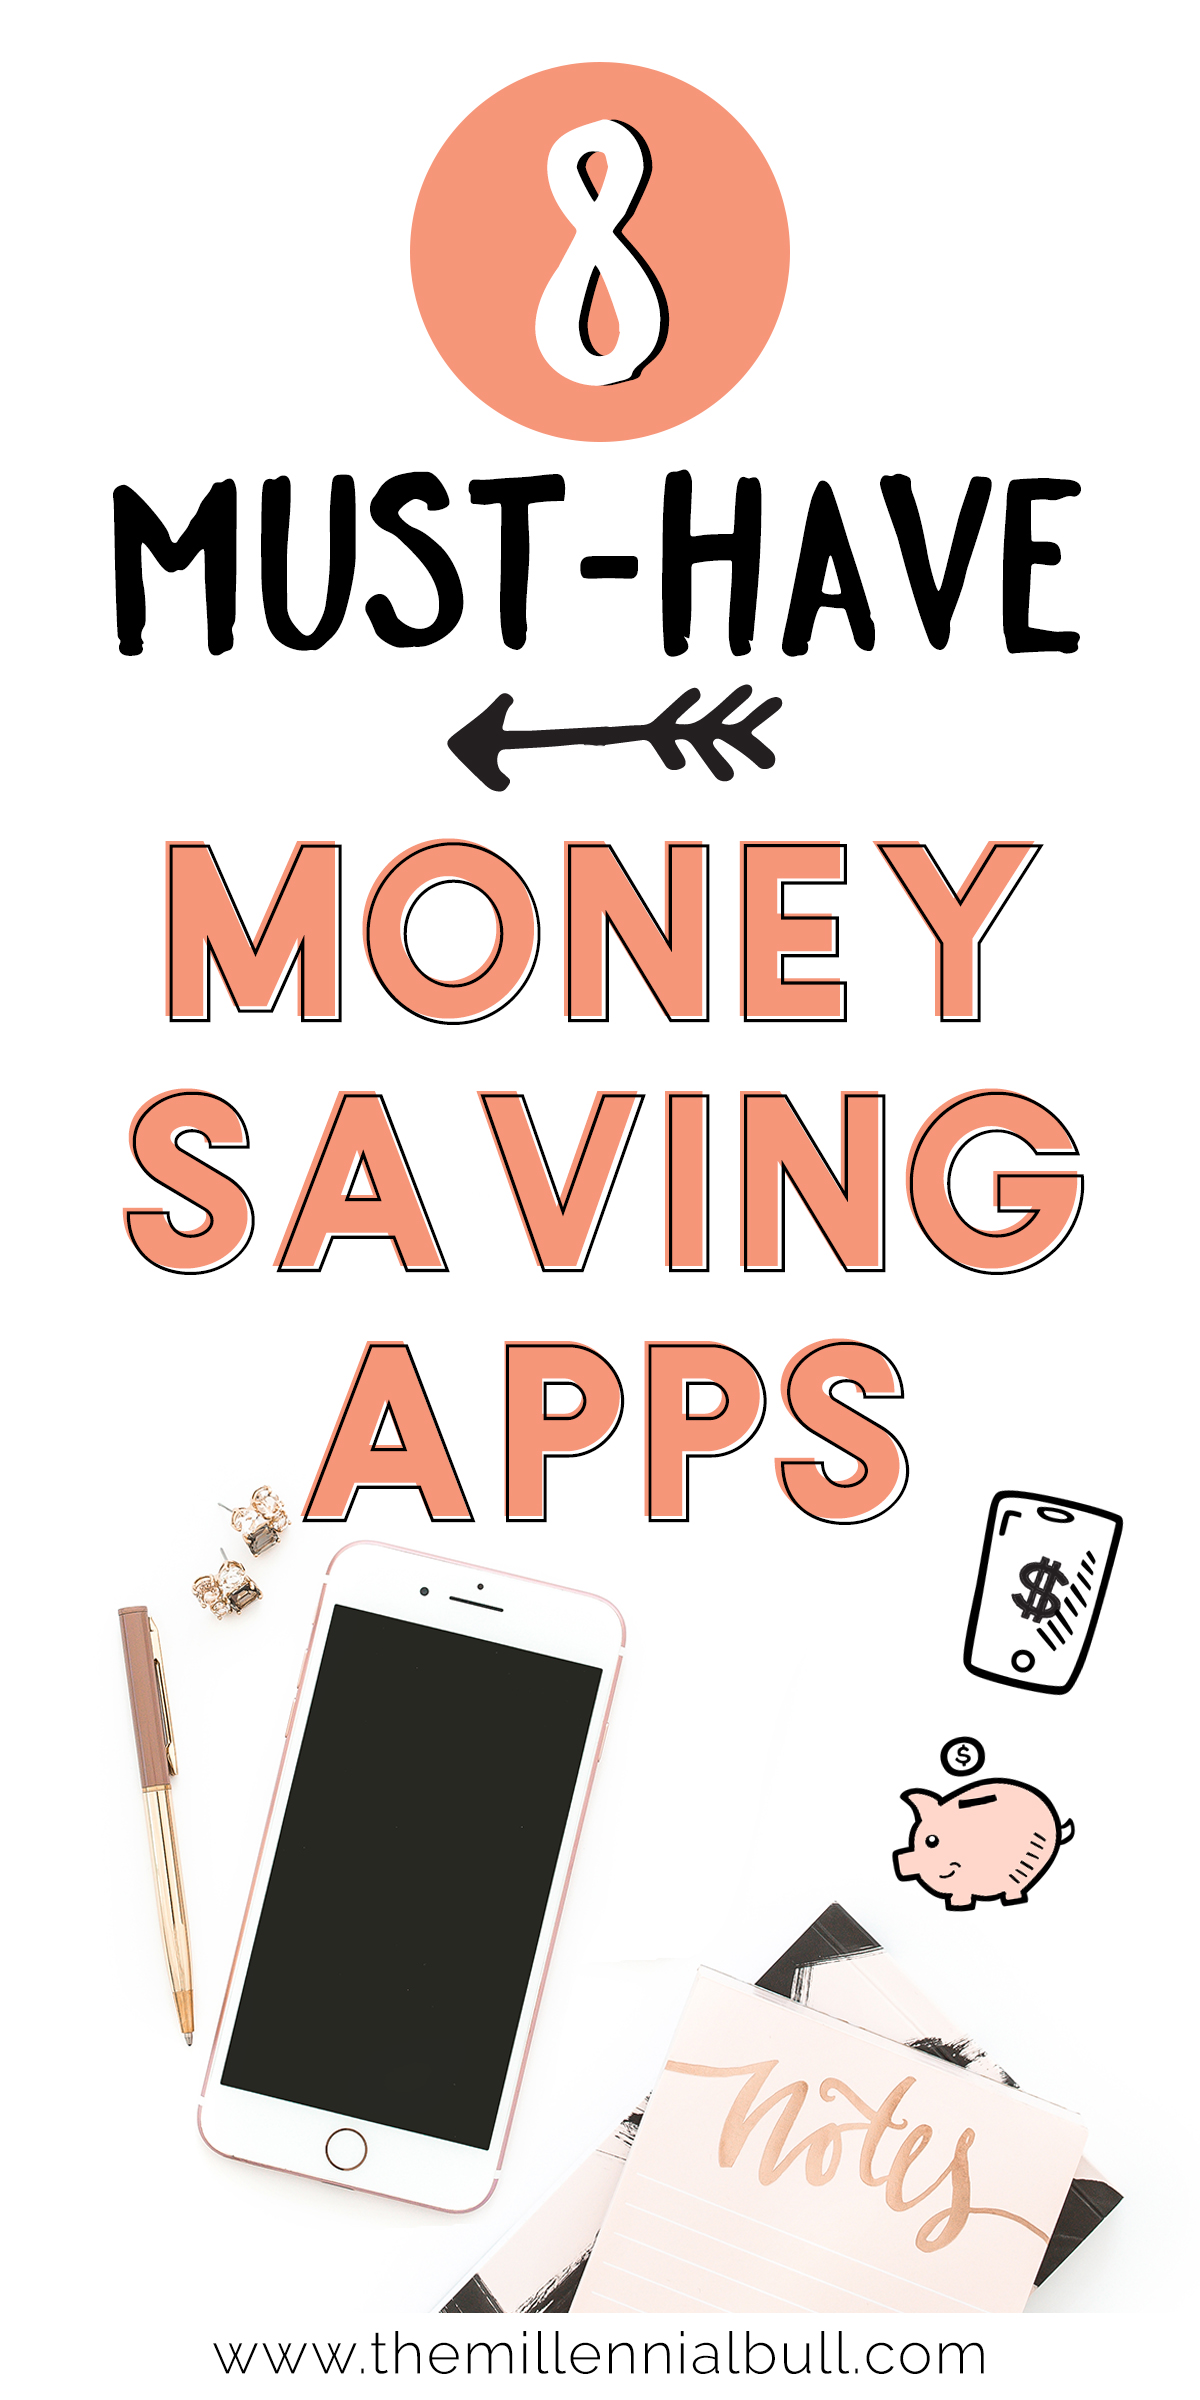 7+ must-have money-saving apps to help you save money without much effort! Get cash back on things you were already going to buy like groceries, get points for submitting your receipts, and much more!